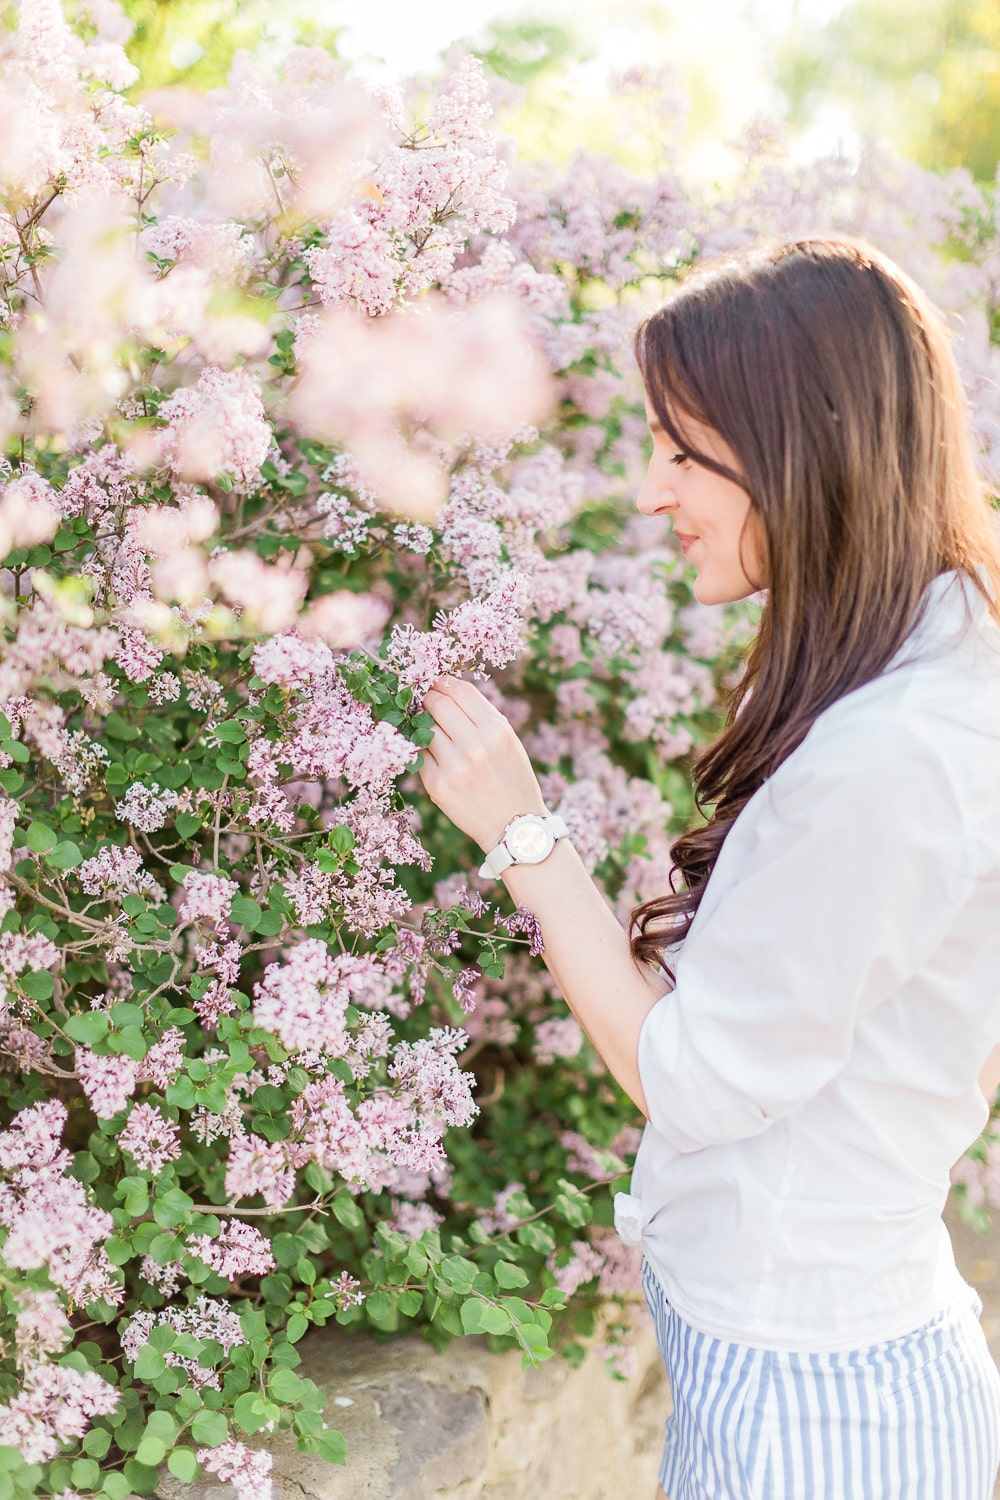 25 simple ways to practice self love by mental health advocate and lifestyle blogger Stephanie Ziajka of Diary of a Debutante